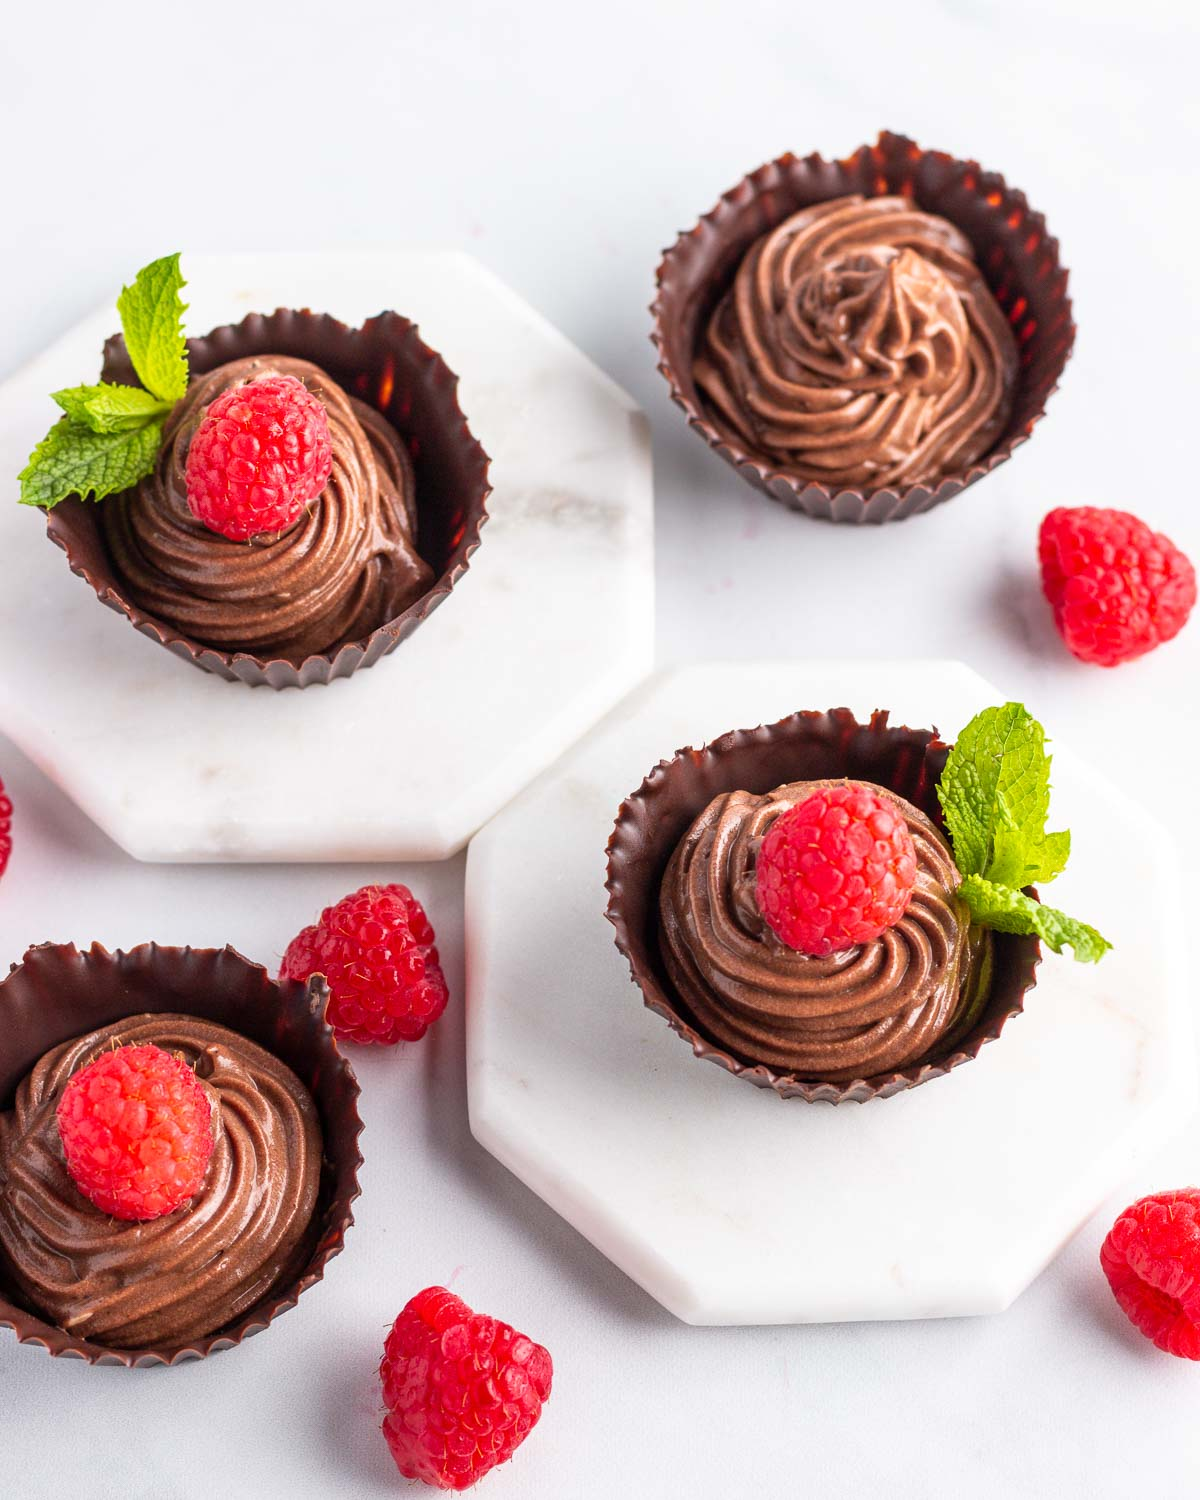 Keto Chocolate Mousse Cups